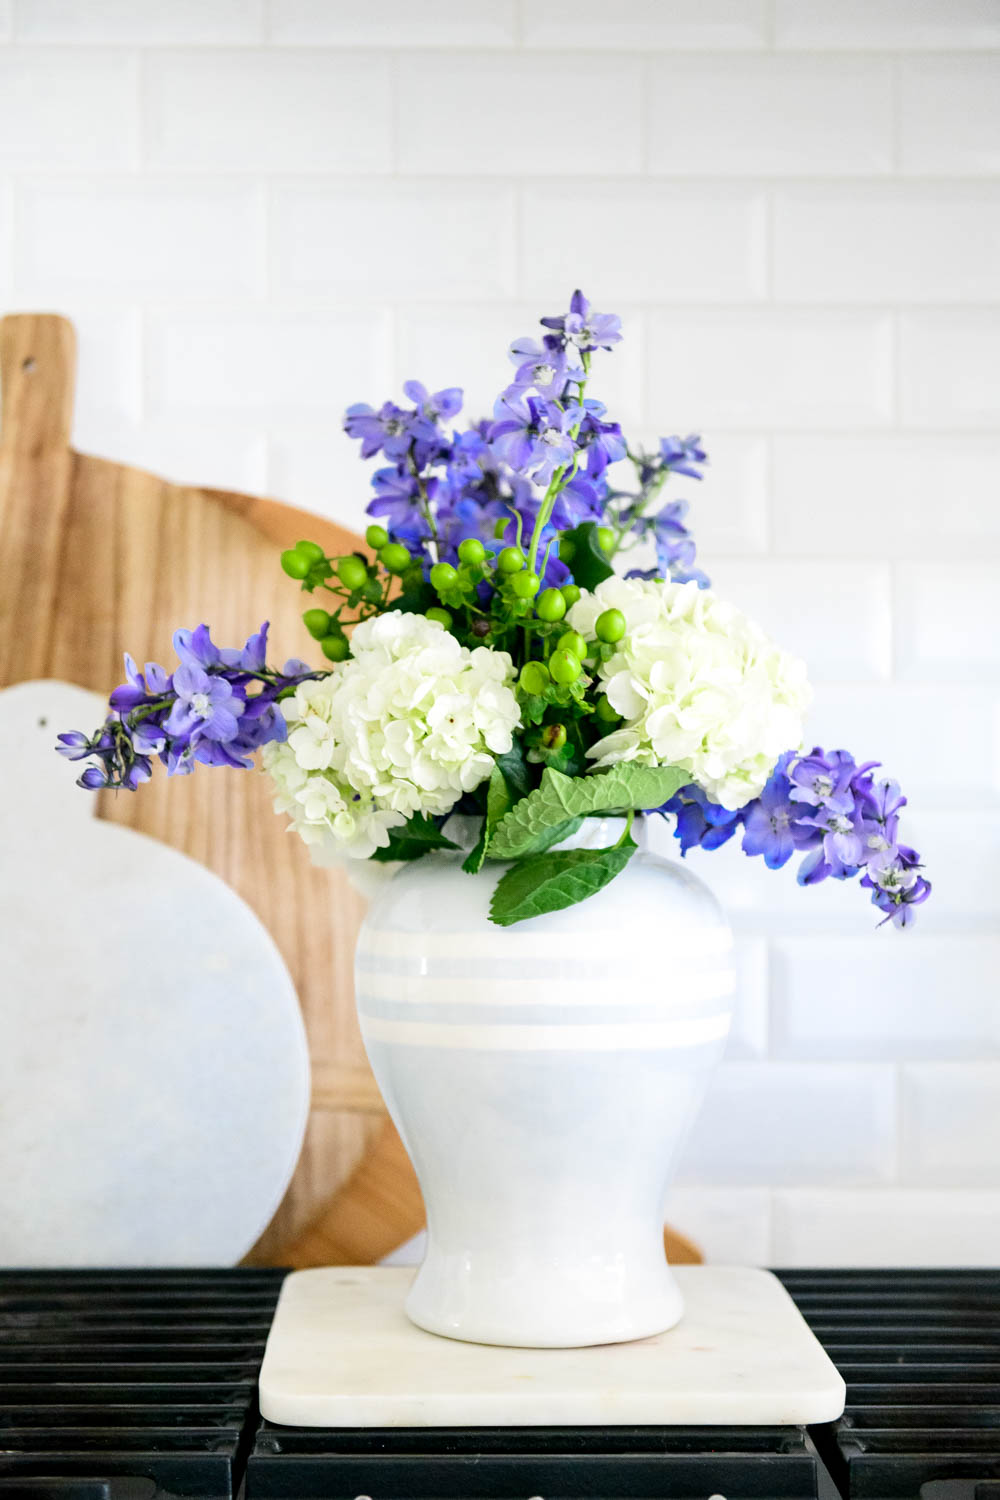 Grocery store flowers, cooktop, kitchen stove, blue and white gingham. #ABlissfulNest #whitekicthen #kitchendecor #kitchenstyle